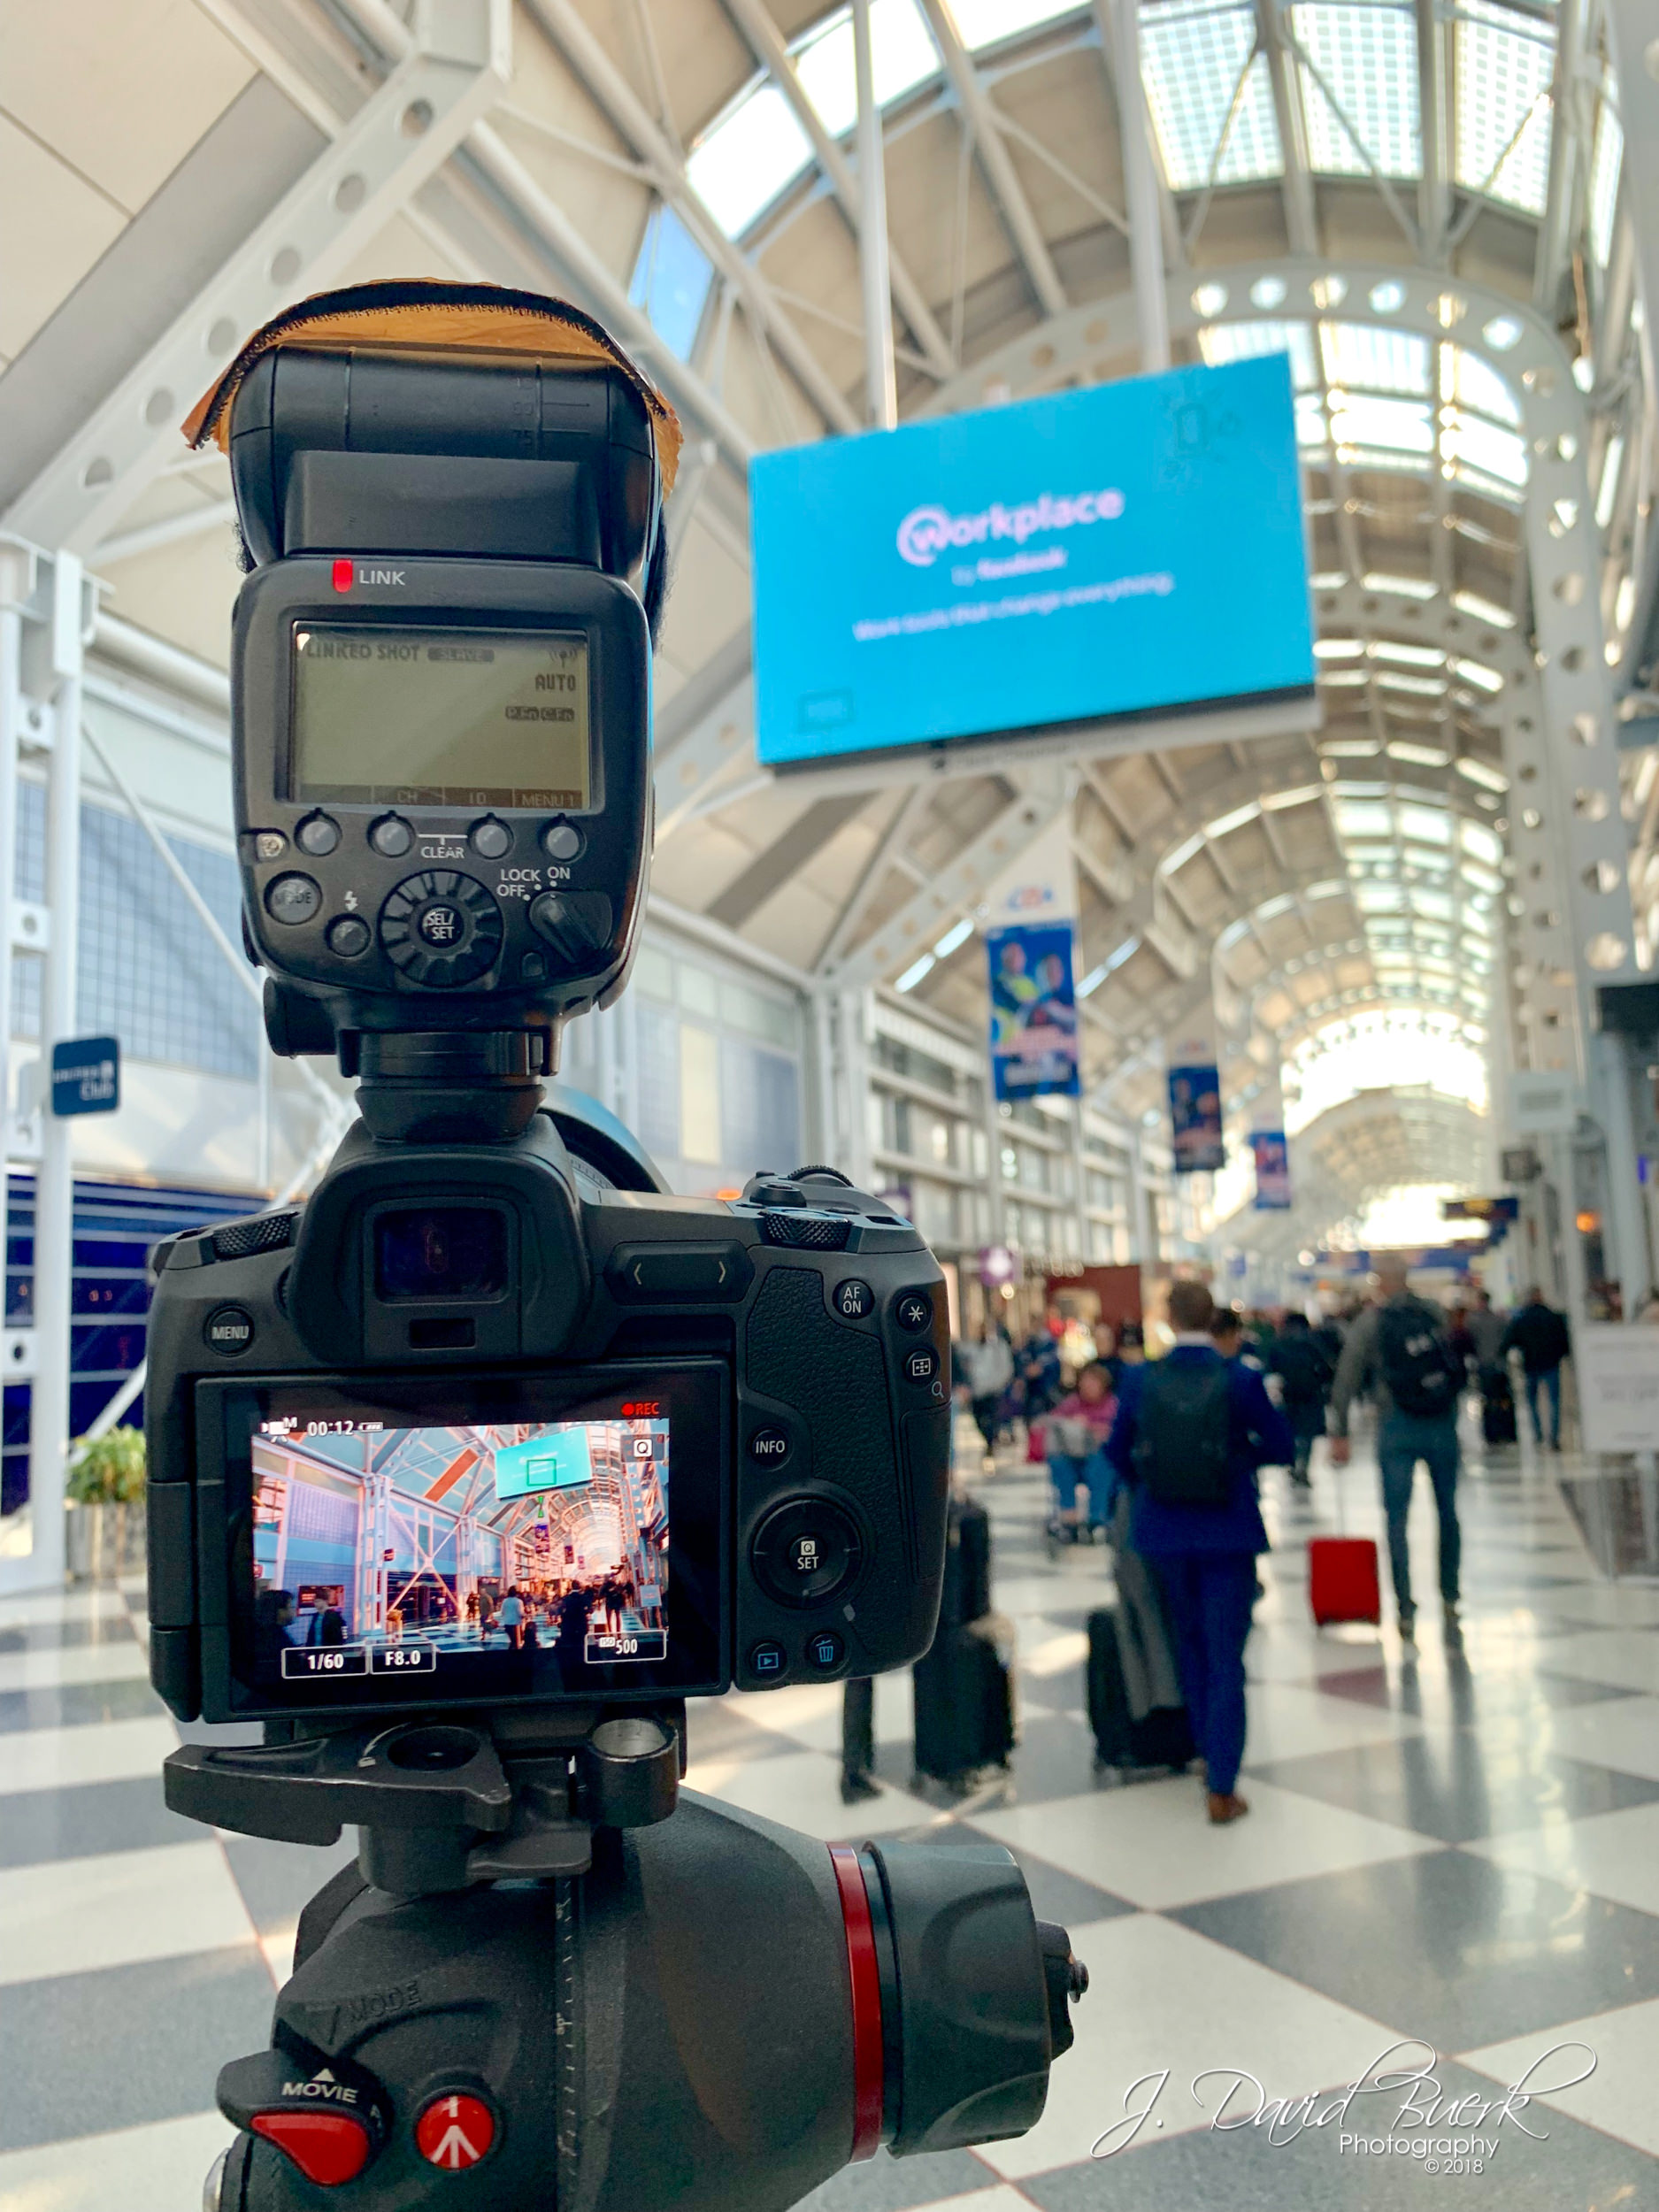 My first photoshoot with Canon's new EOS R mirrorless full-frame camera, in Chicago O'Hare International Airport. Shot and edited entirely on iPhone XS.